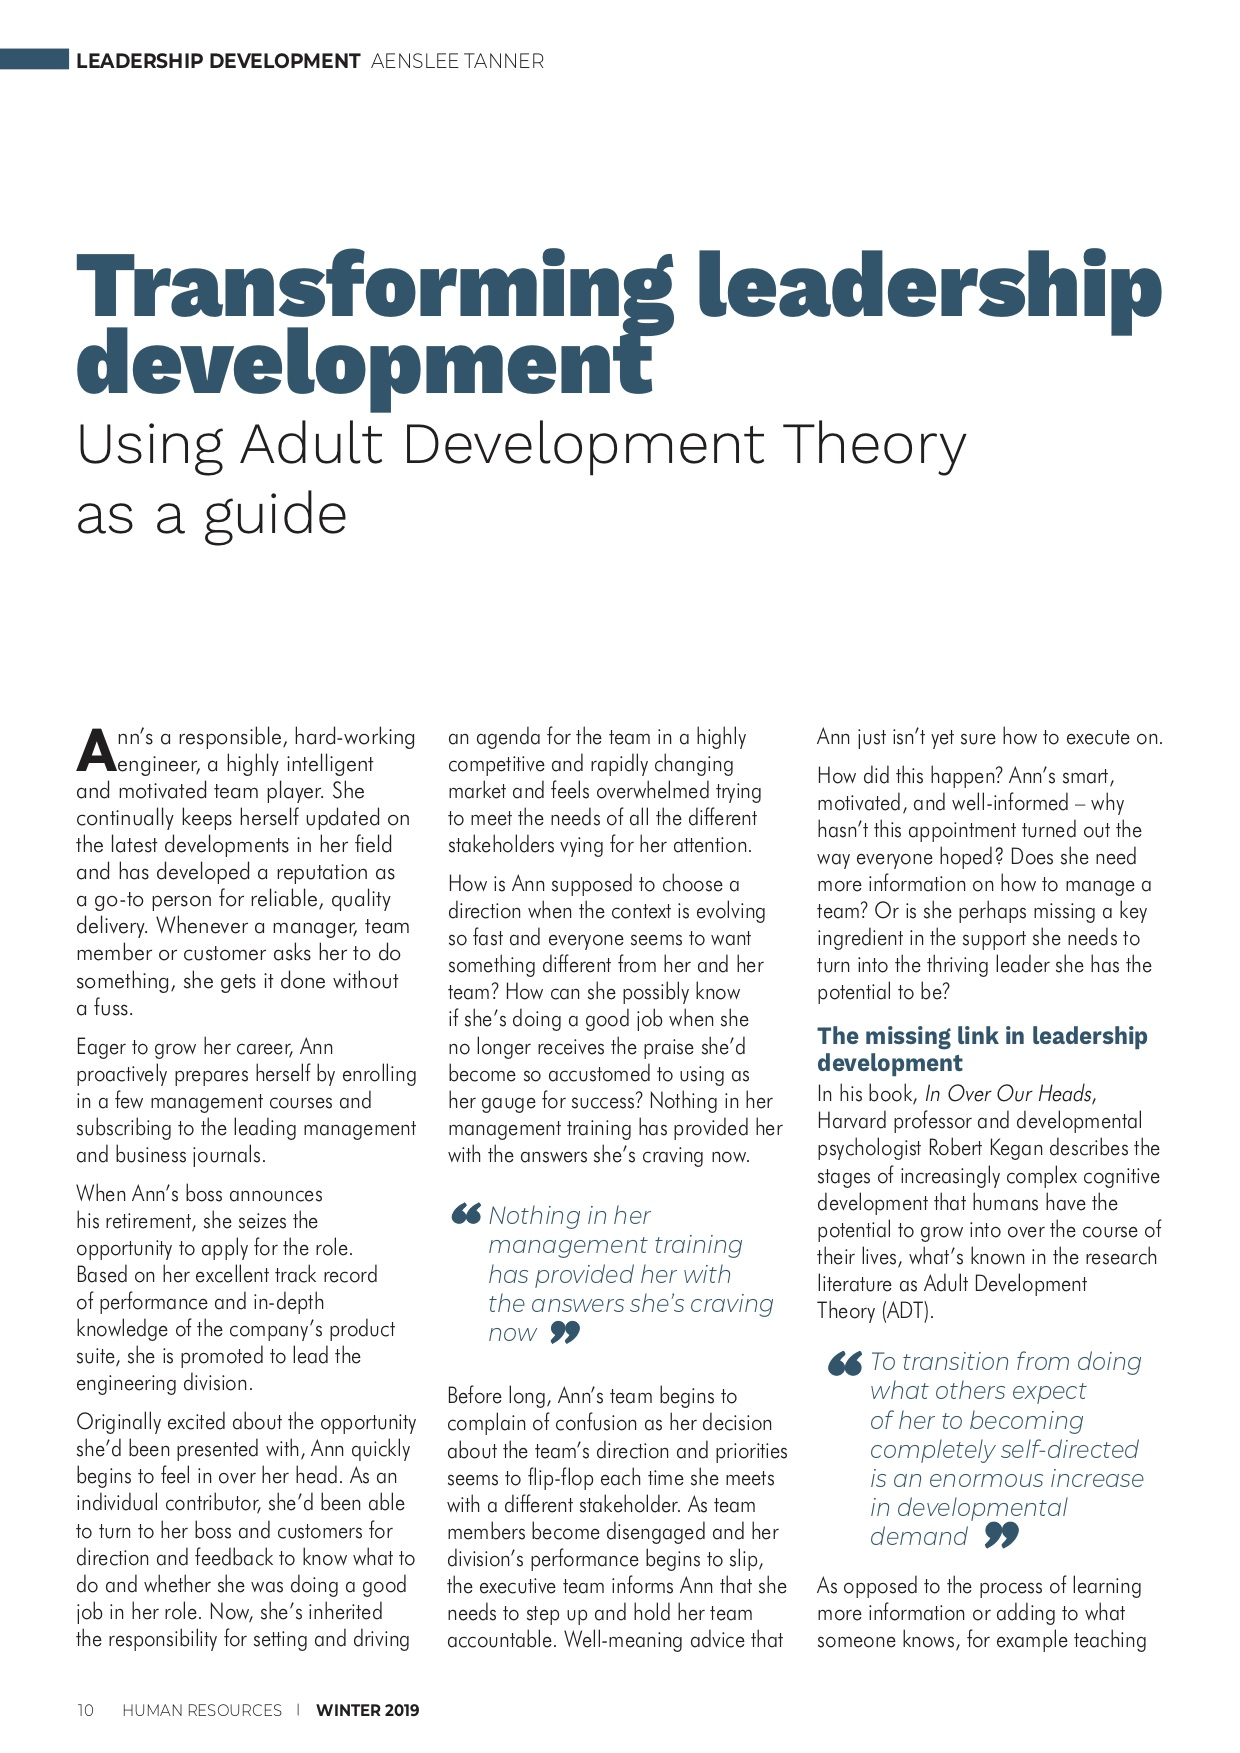 Transforming leadership development - using adult development theory as a guide